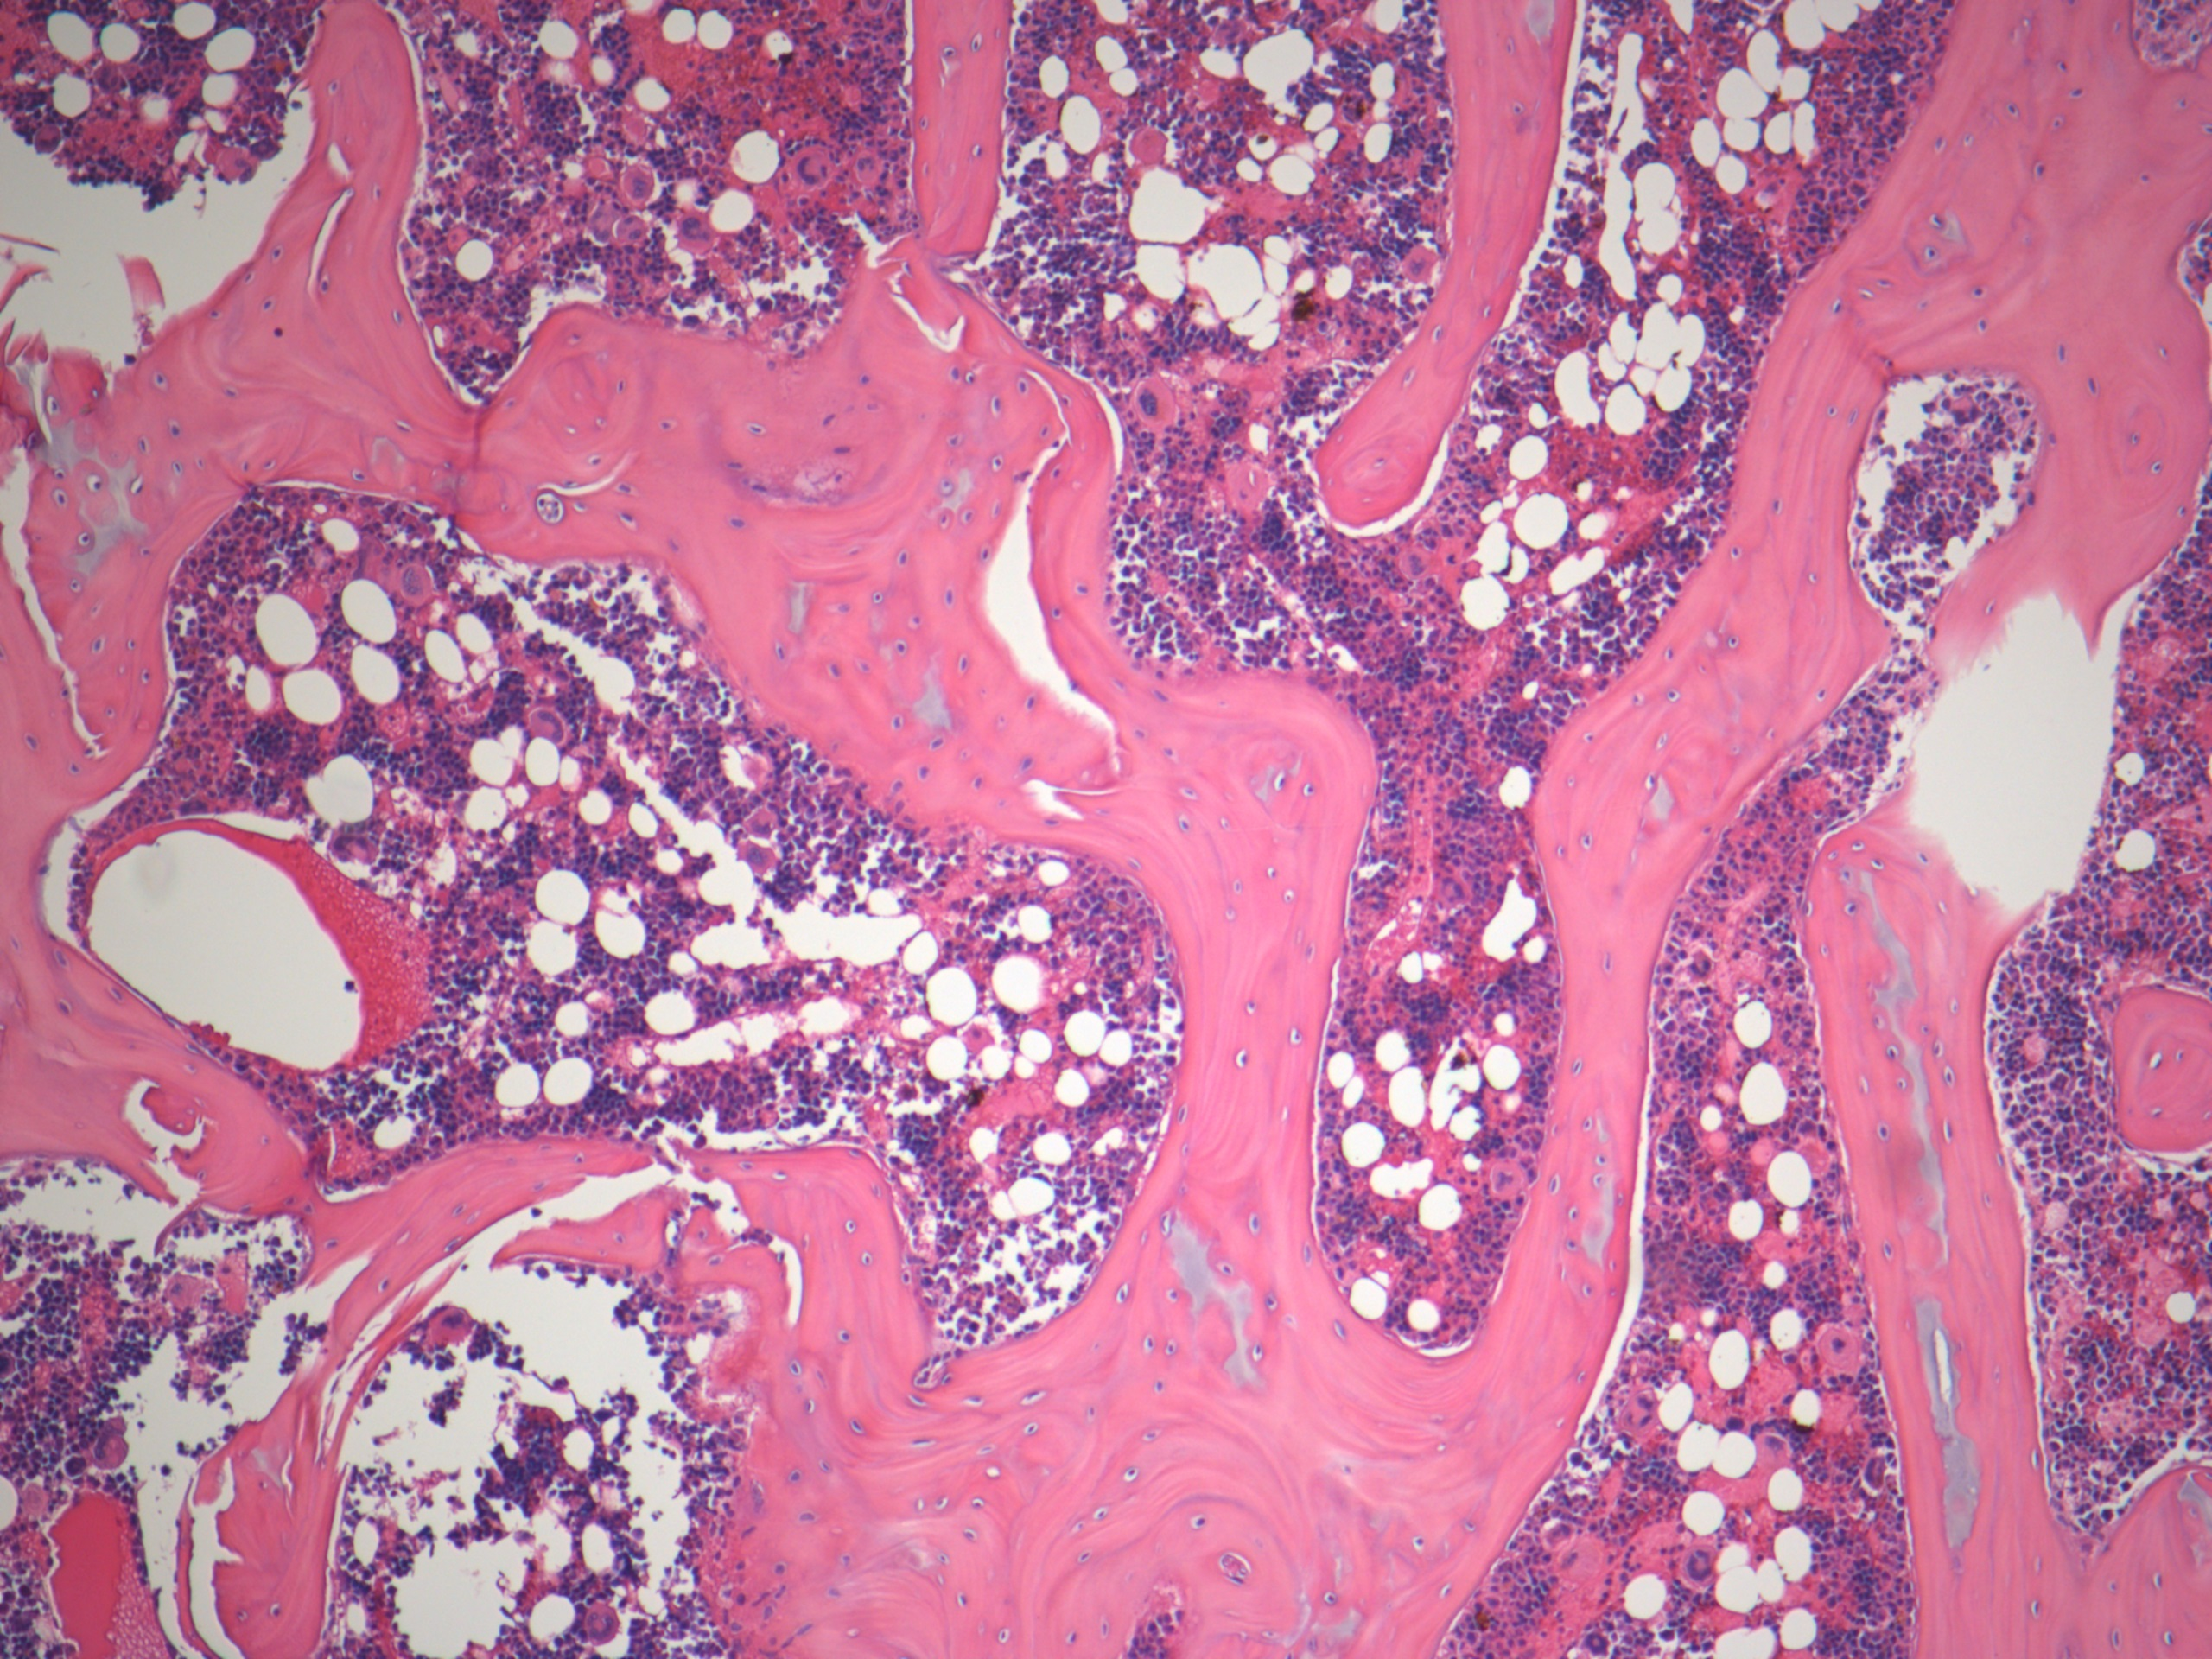 microscopic bone marrow stained with H&E